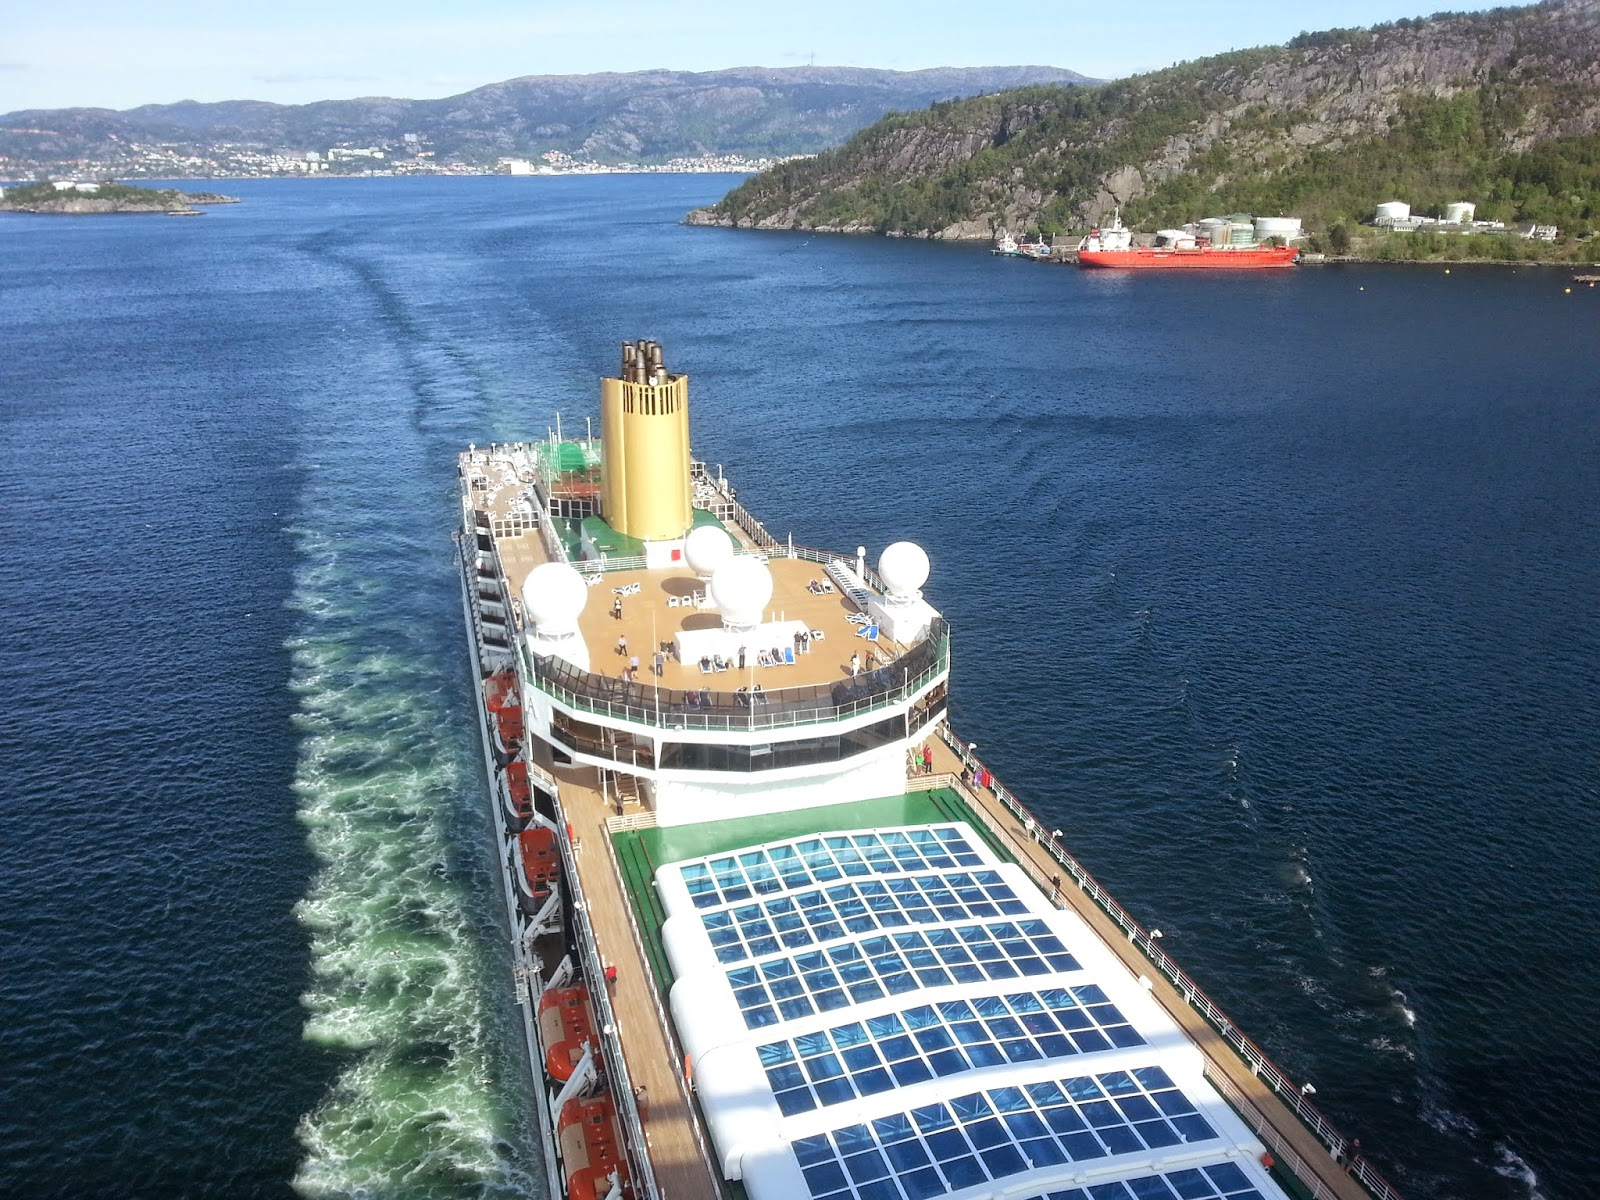 P&O Cruise Ship Arcadia sails under the Askøy bridge in Bergen, Norway